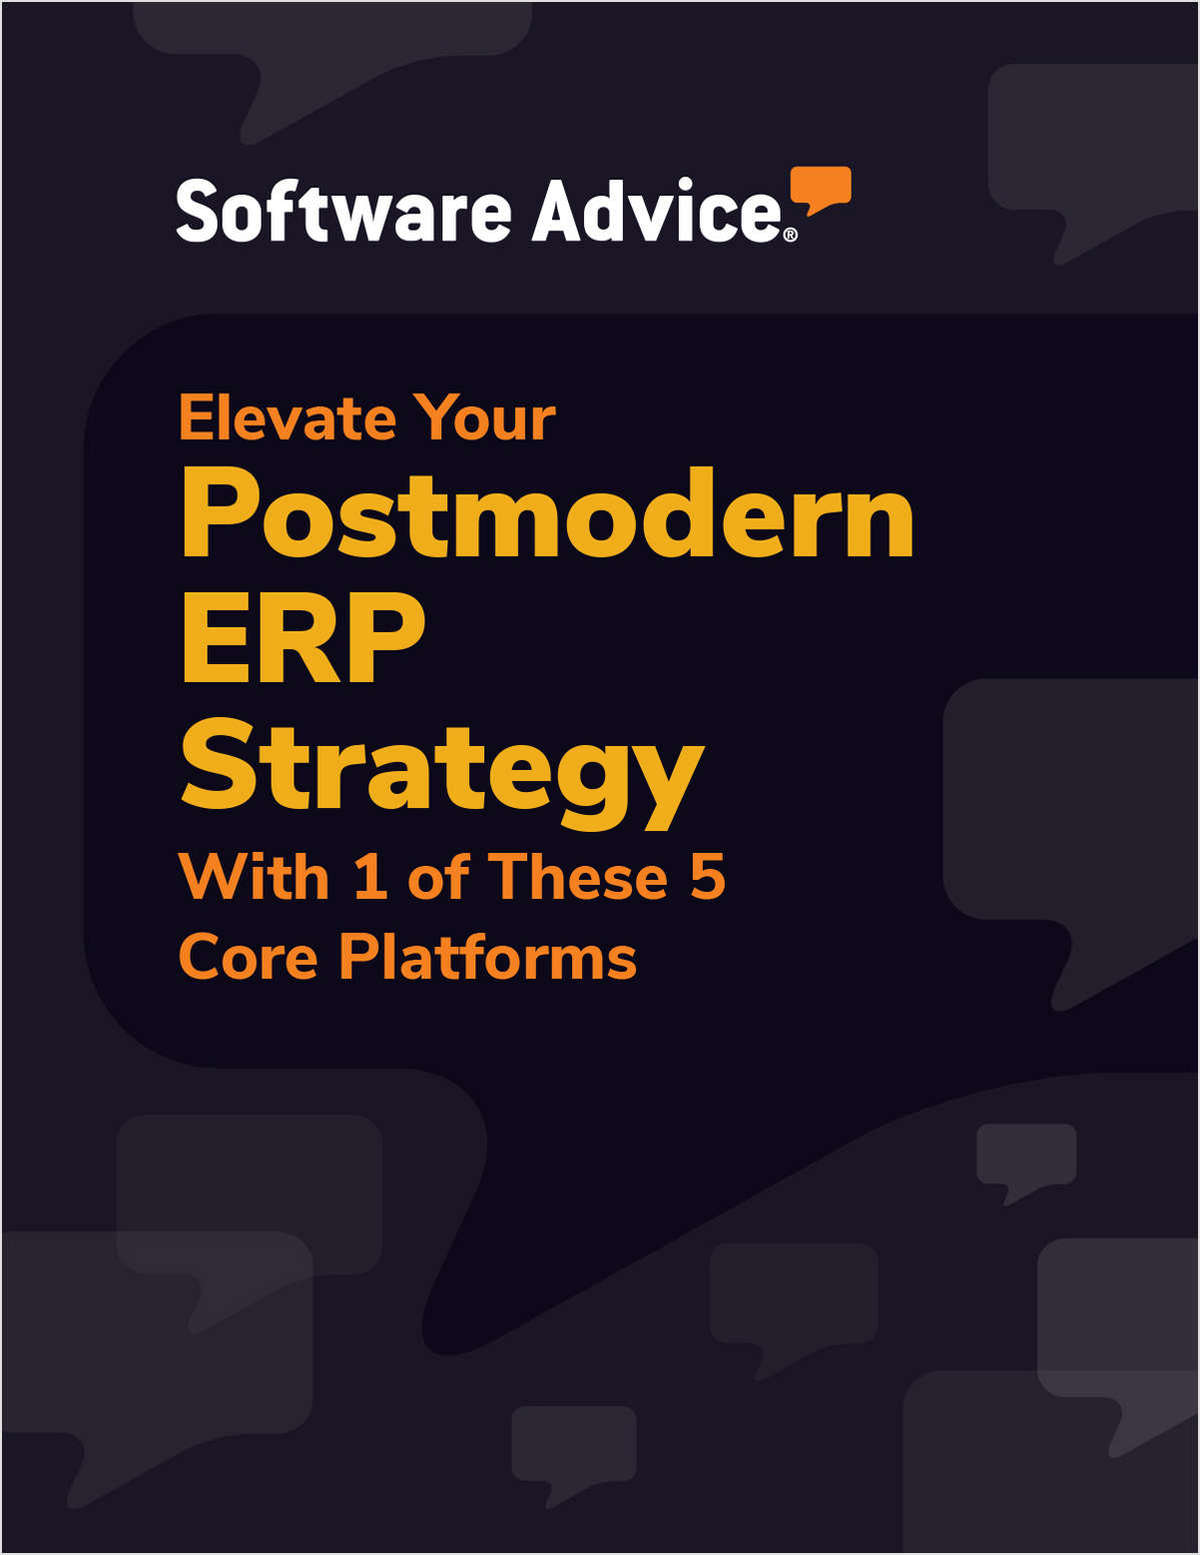 Elevate Your Postmodern ERP Strategy With 1 of These 5 Core Platforms